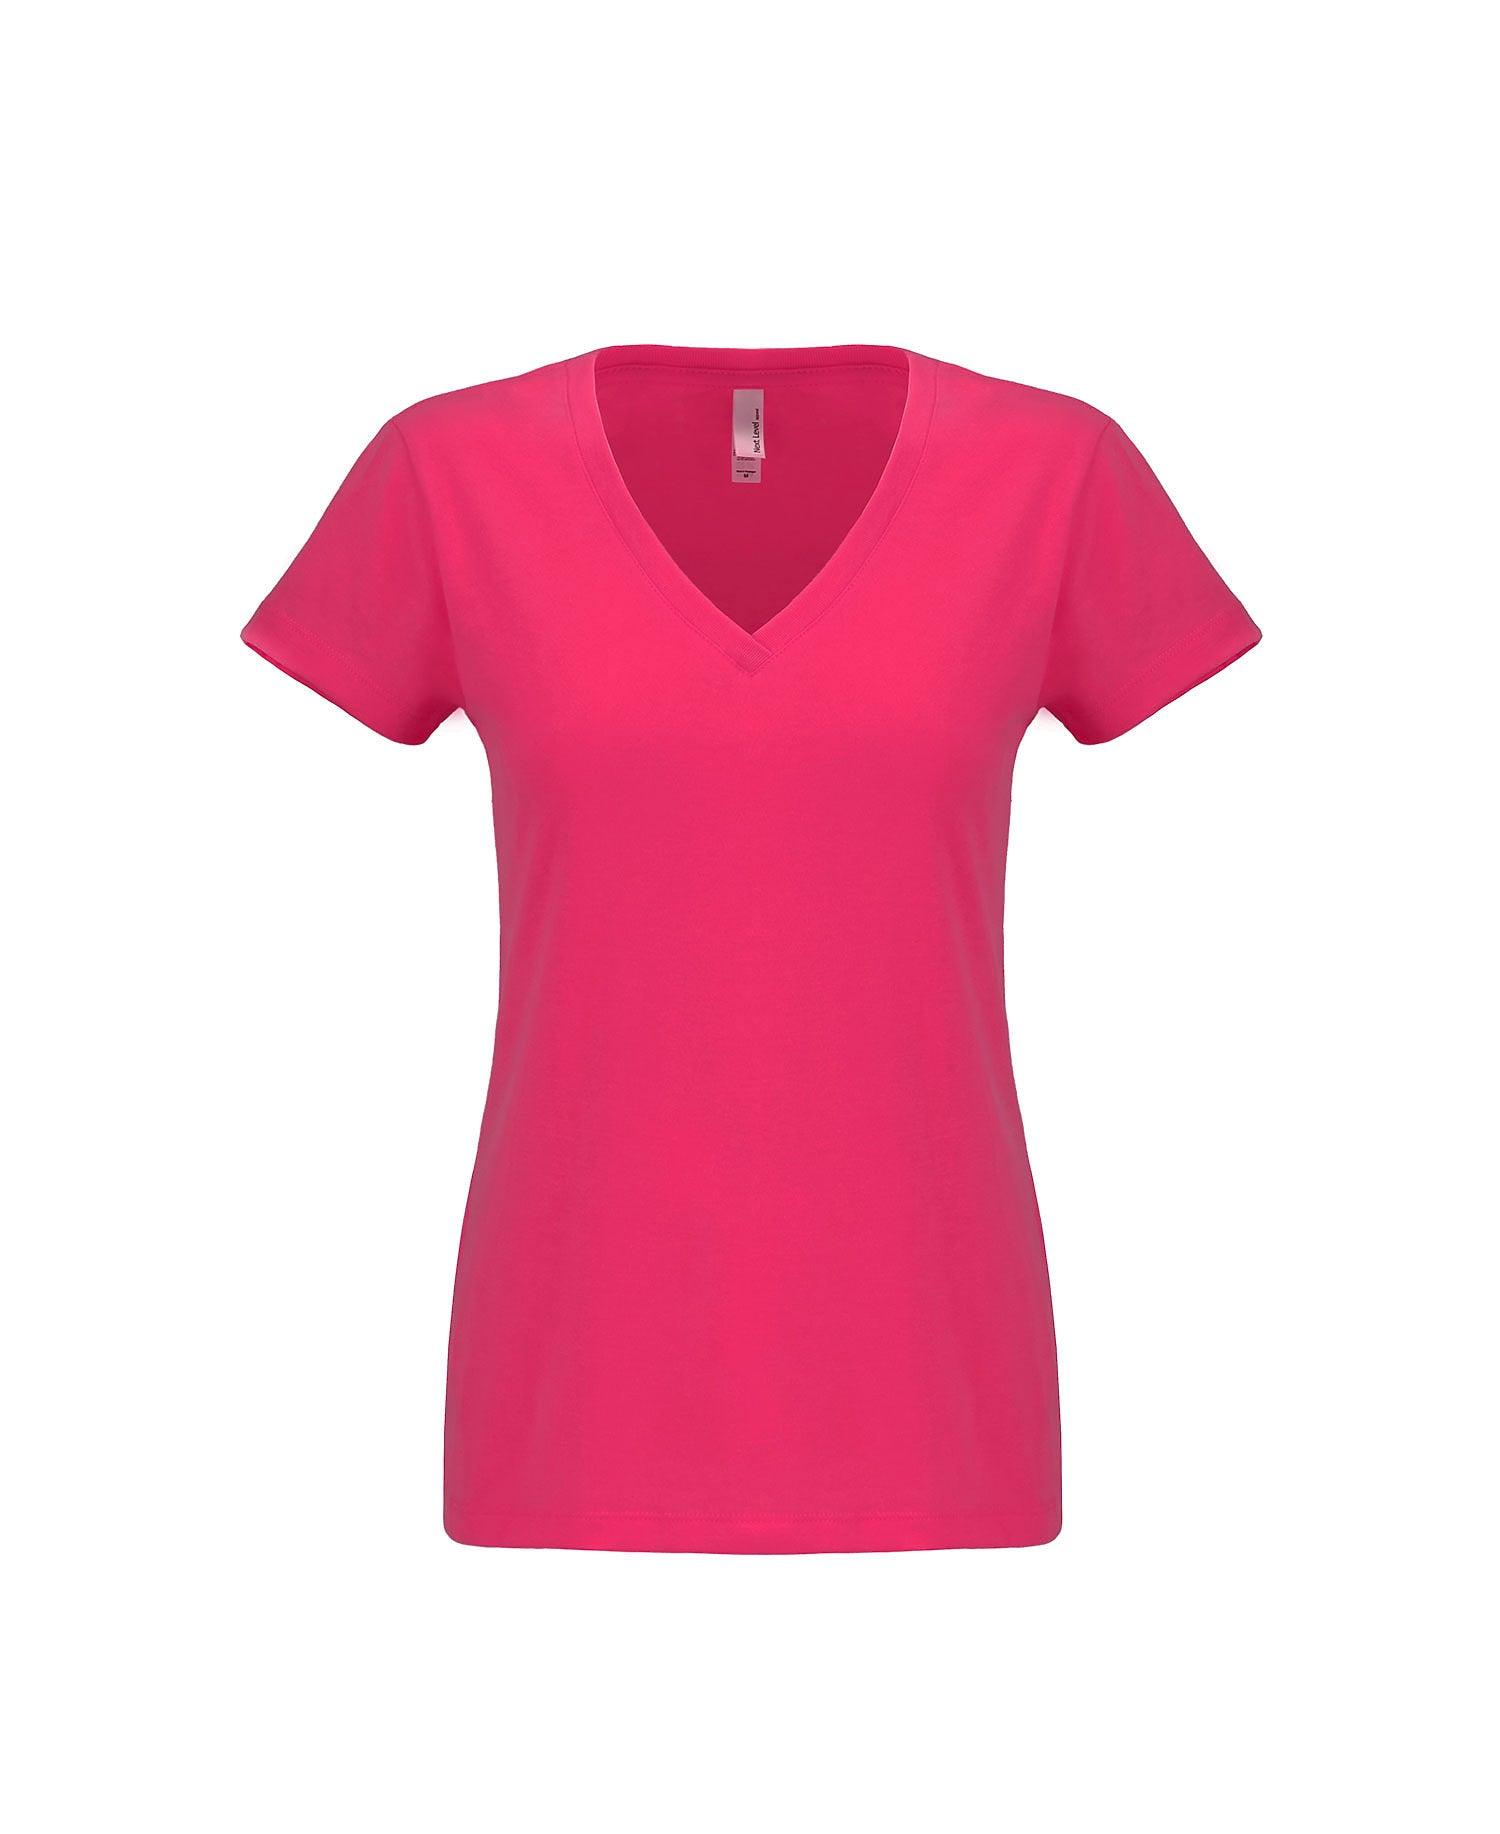 Next-Level-Women-039-s-Sueded-V-Neck-Tee-NL6480 thumbnail 18